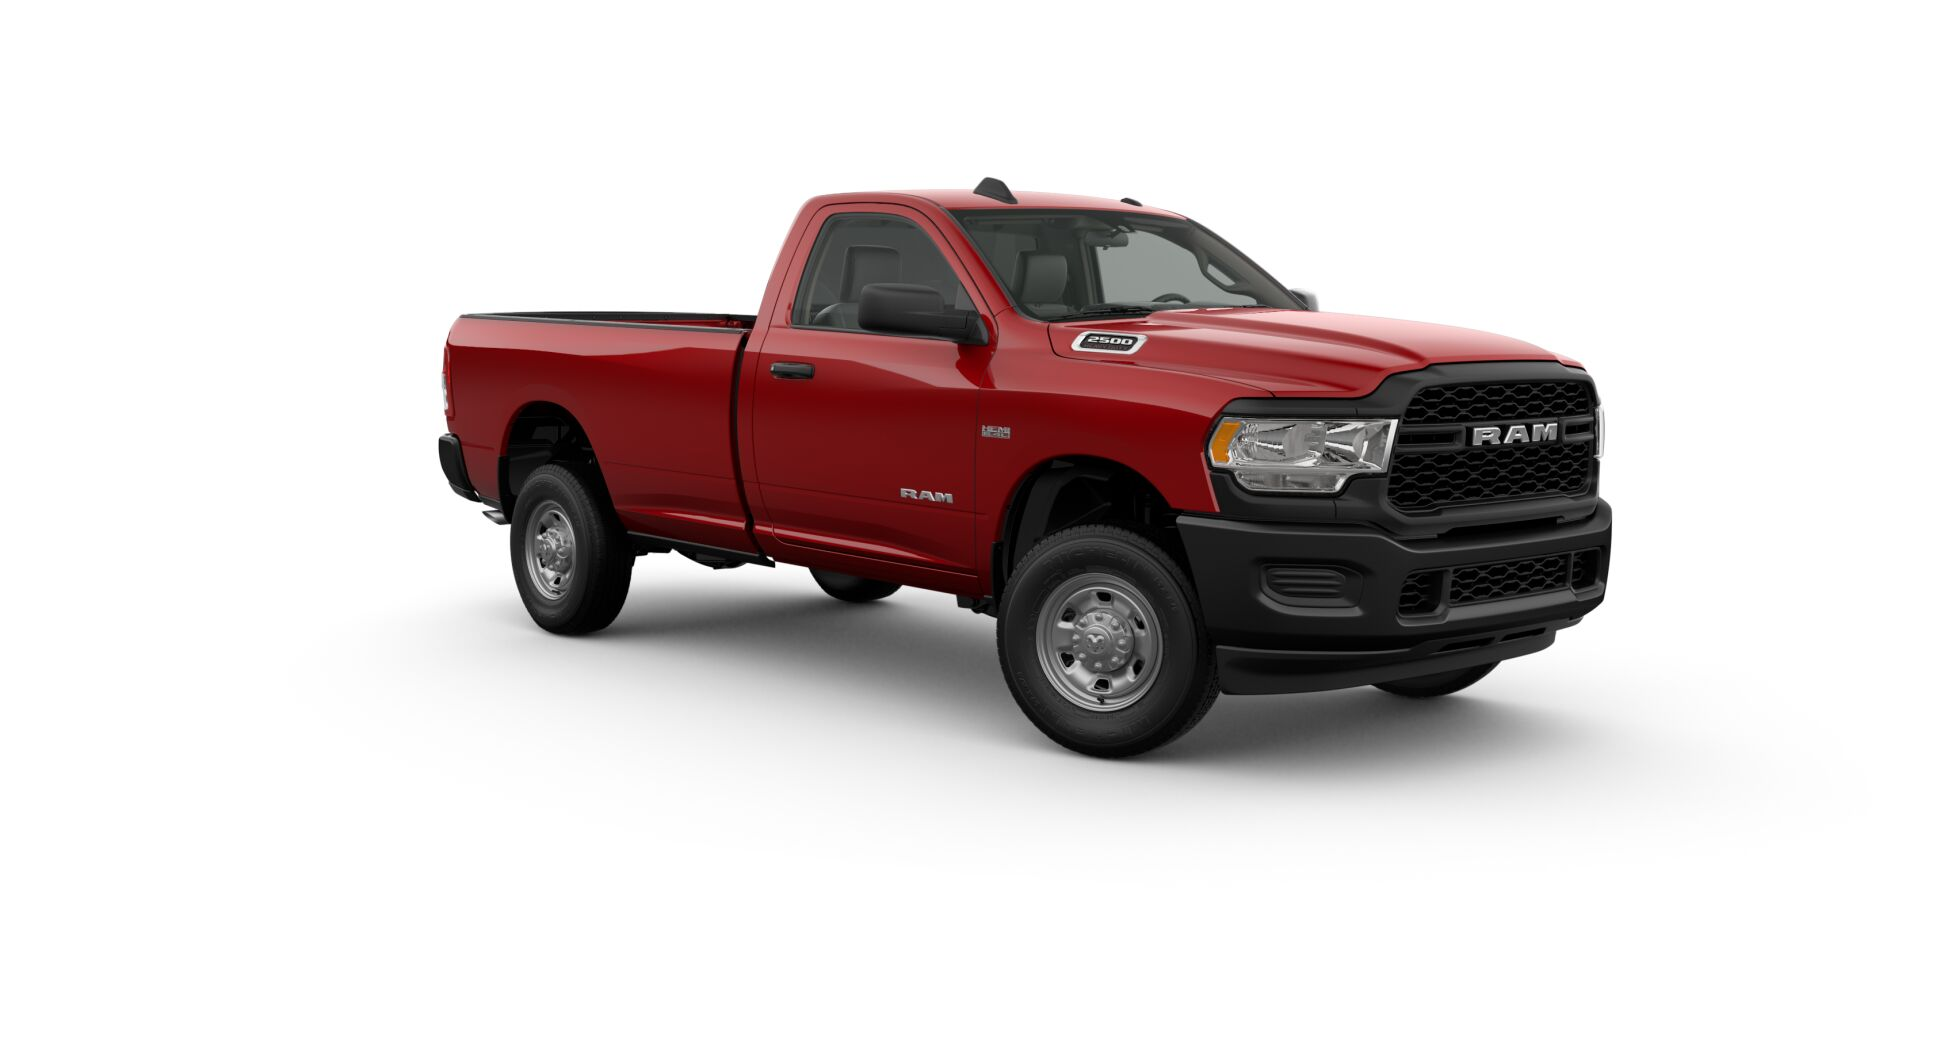 2019 Ram Tradesman Red Exterior Front View